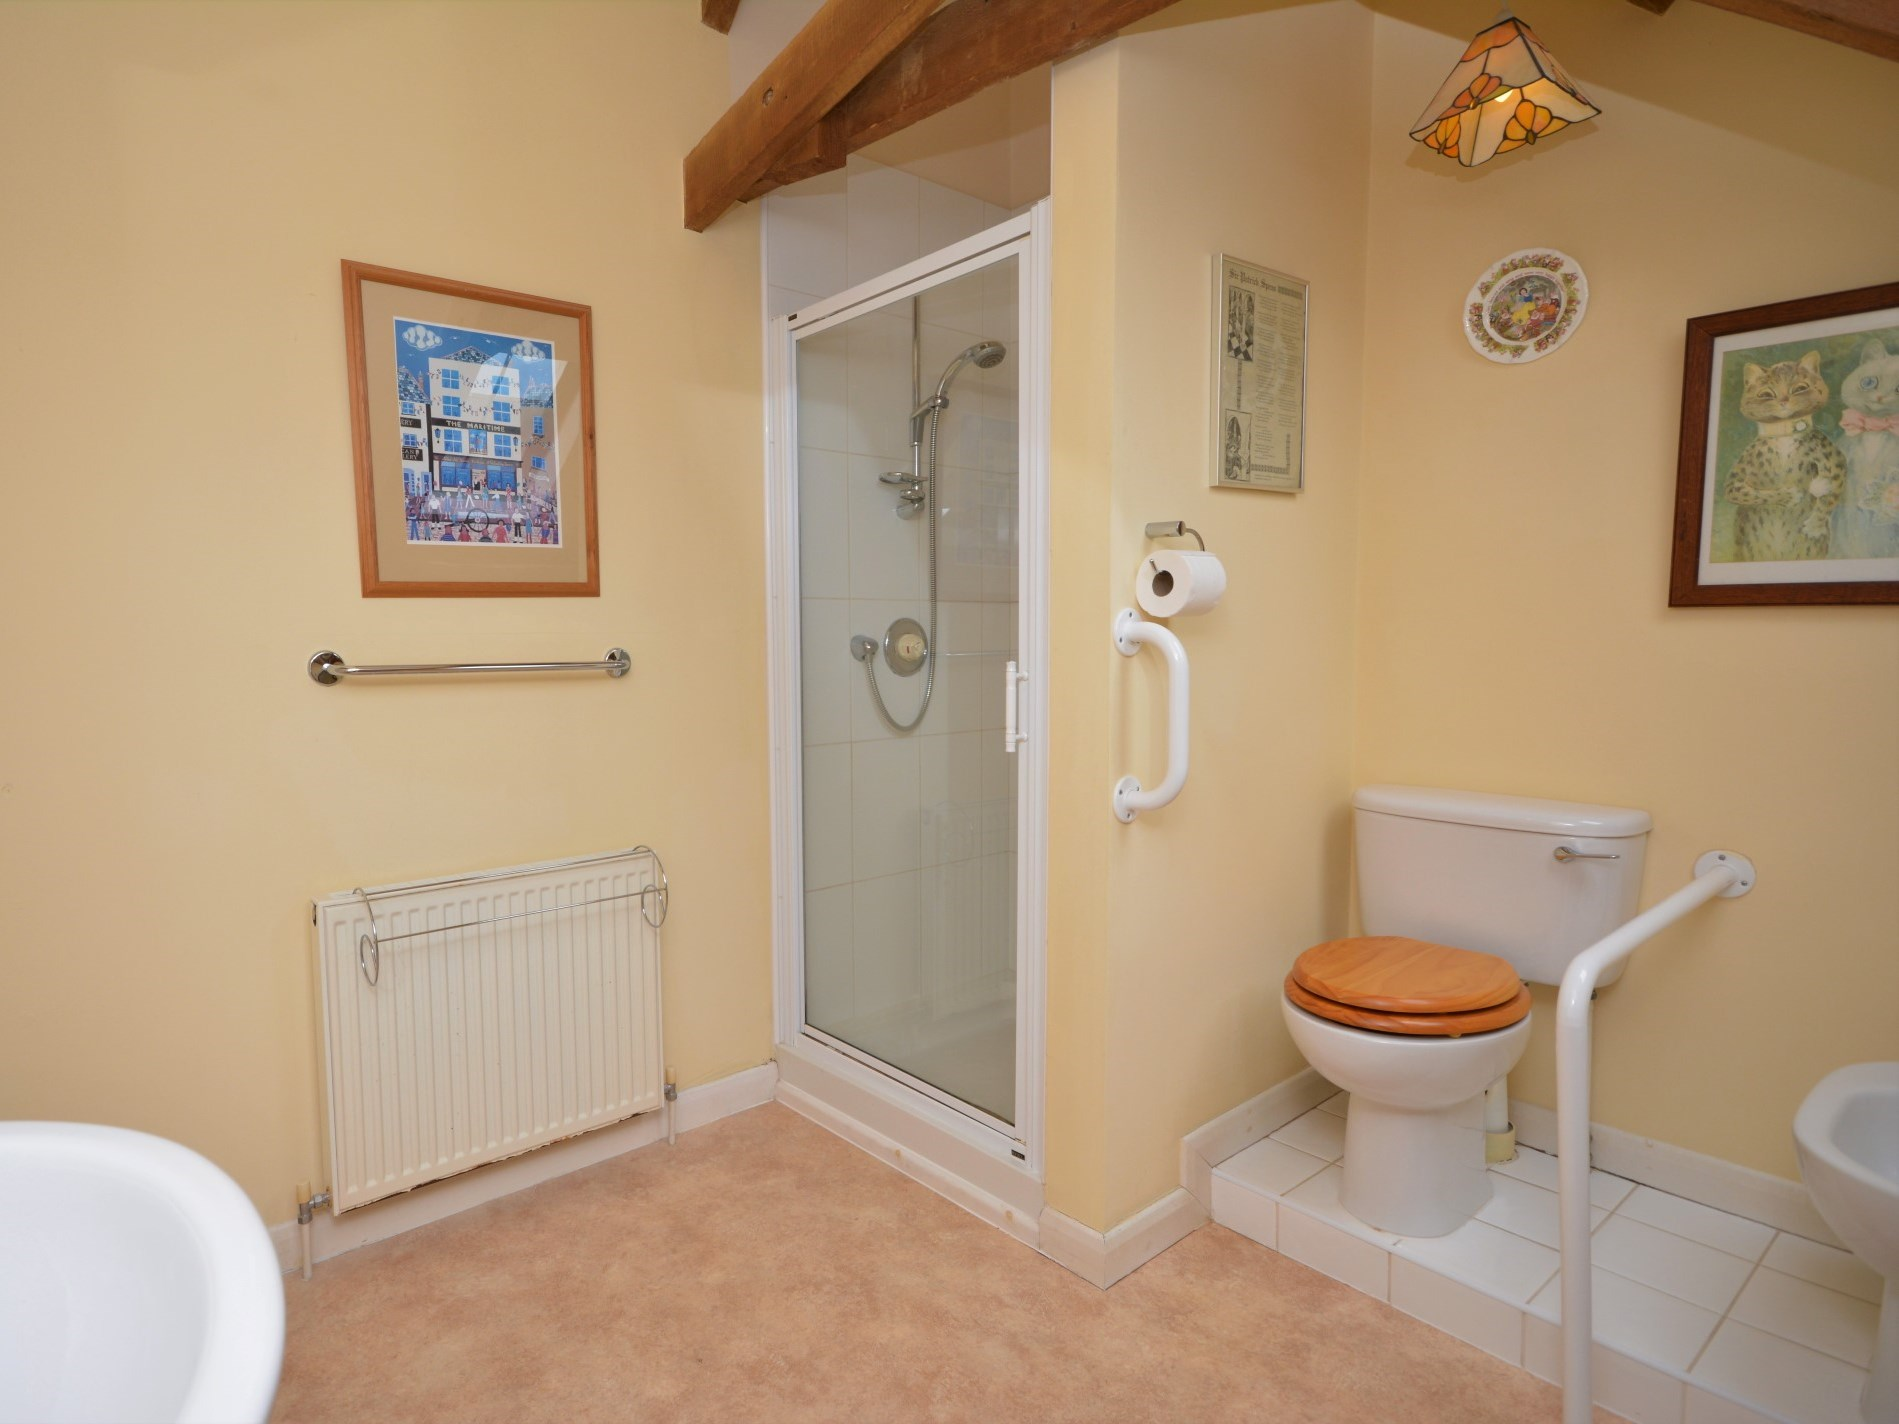 Shower room with WC and bidet